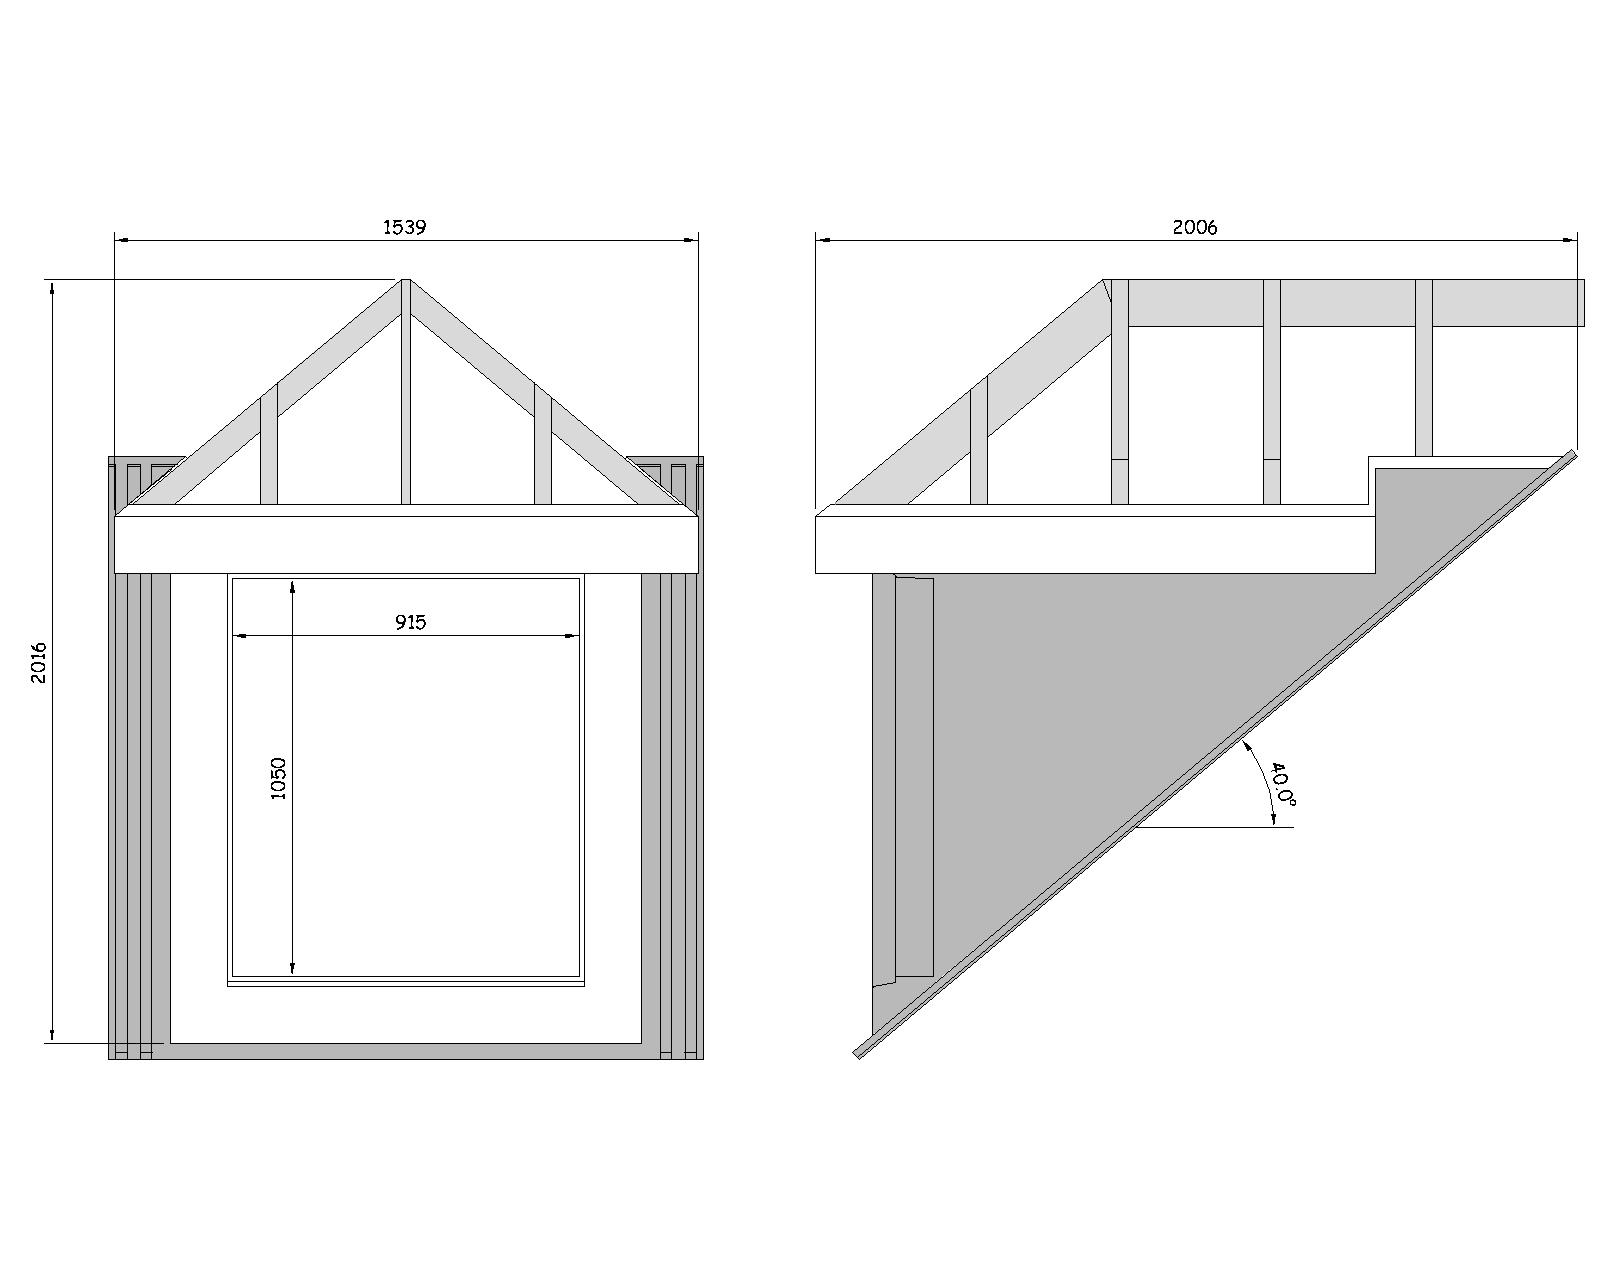 40Â apex hipped roof dormer wbp 6811 05 grp window surrounds